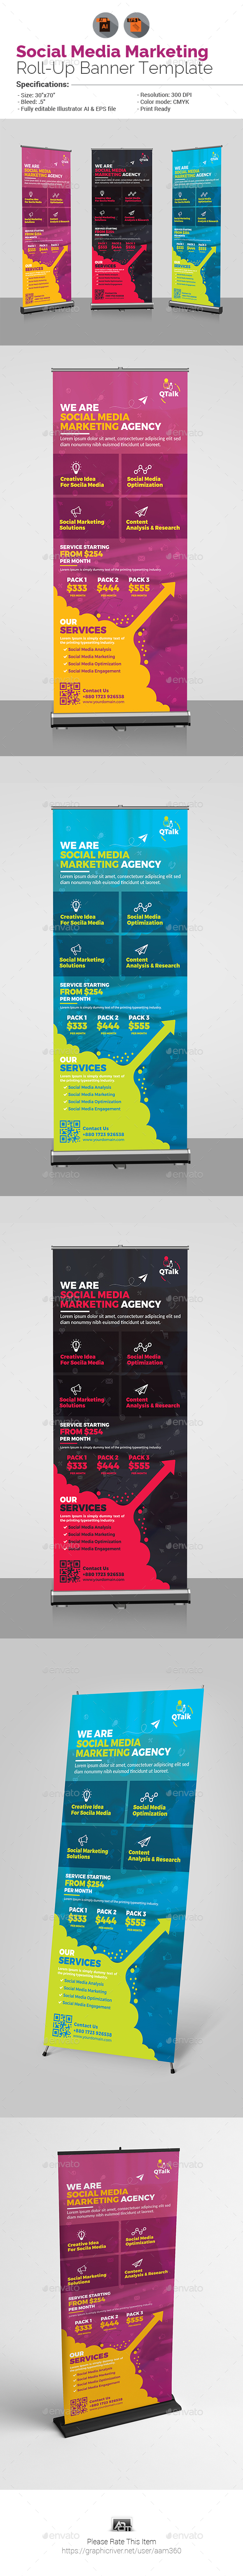 Social Media Marketing Roll Up Banner V2 - Signage Print Templates